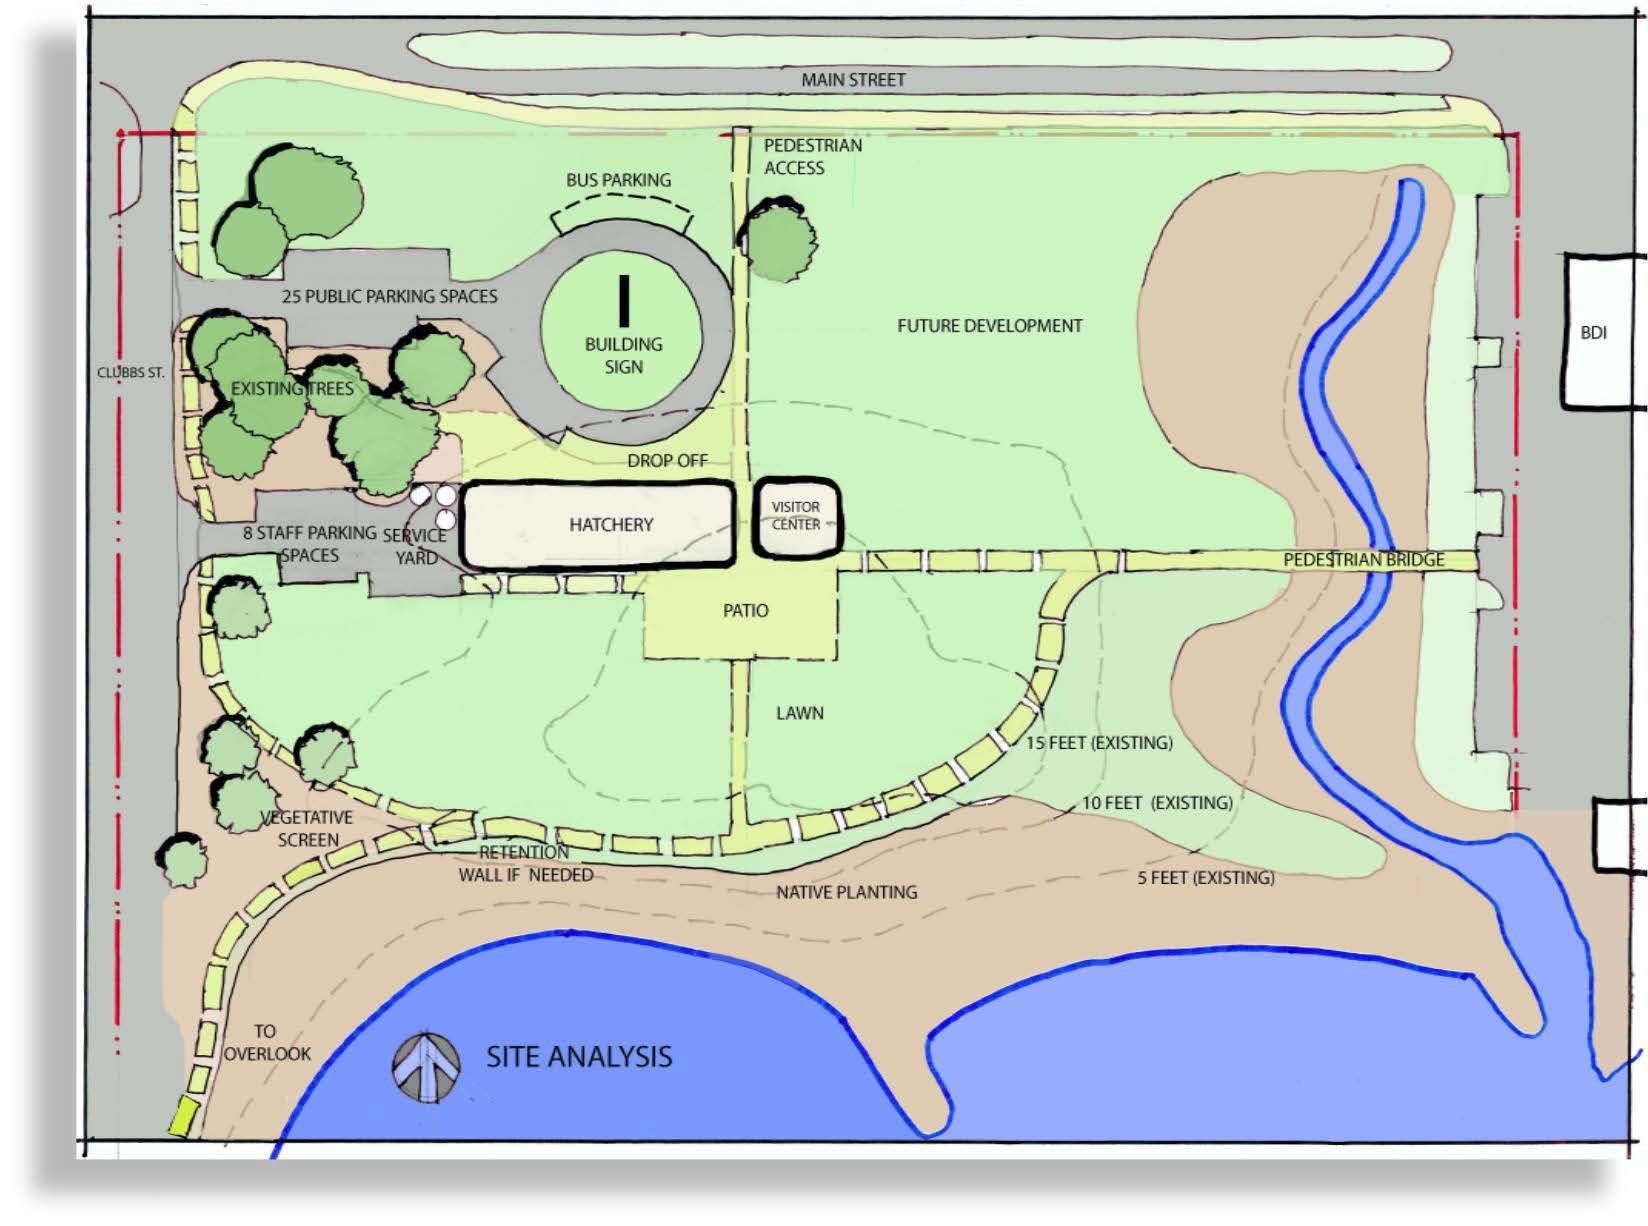 hatchery site conceptual plan